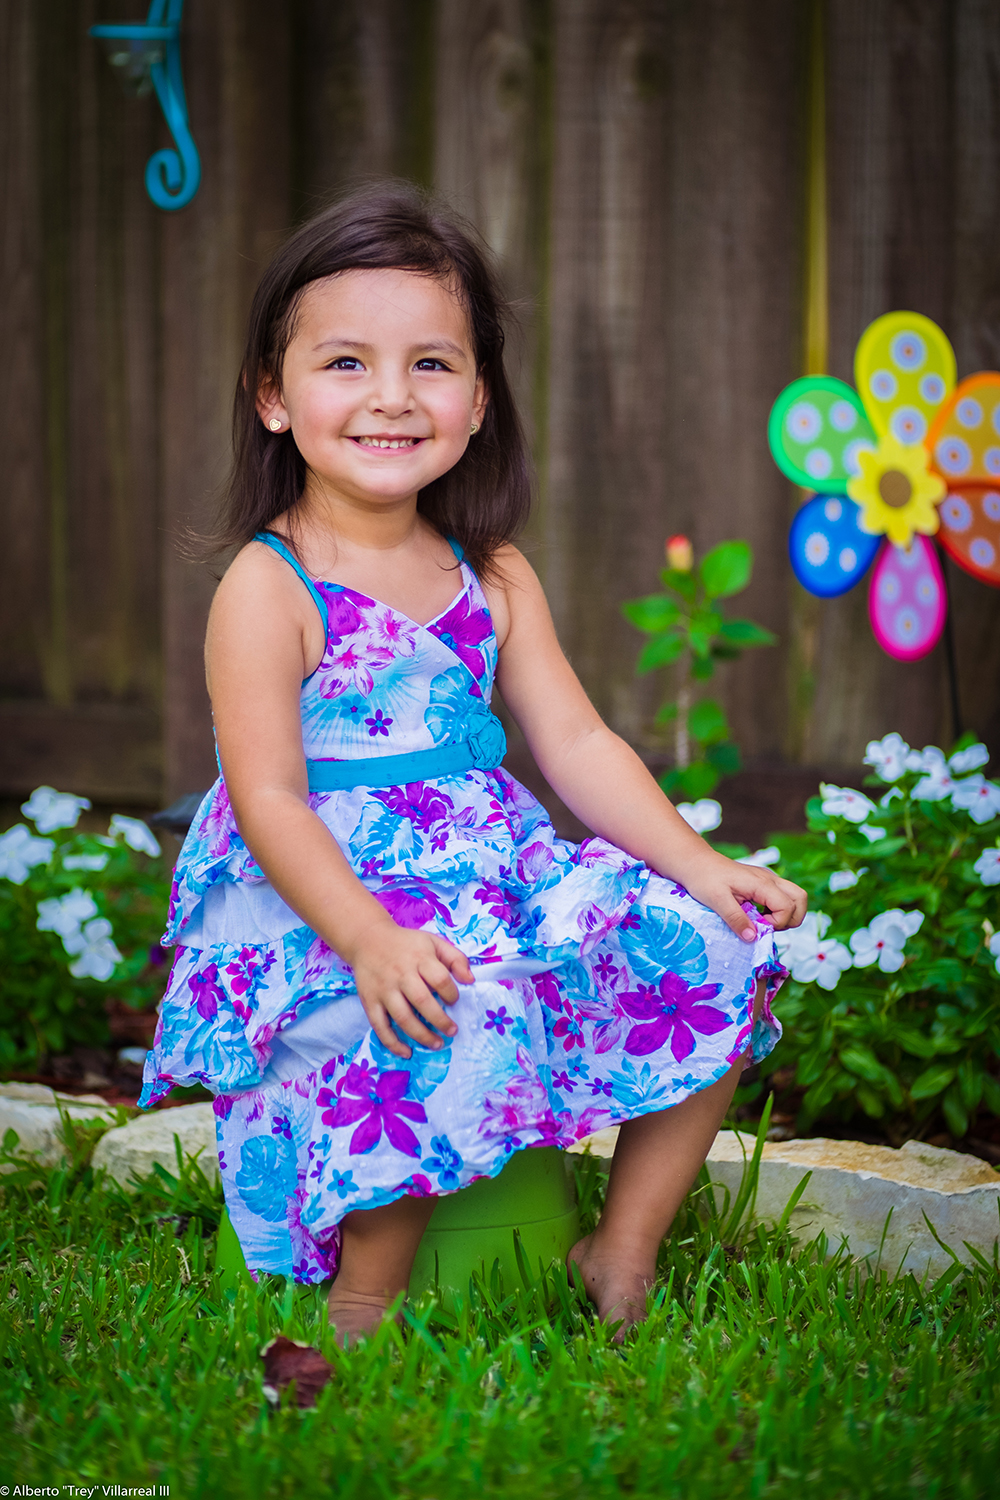 Aviana's Easter Portrait